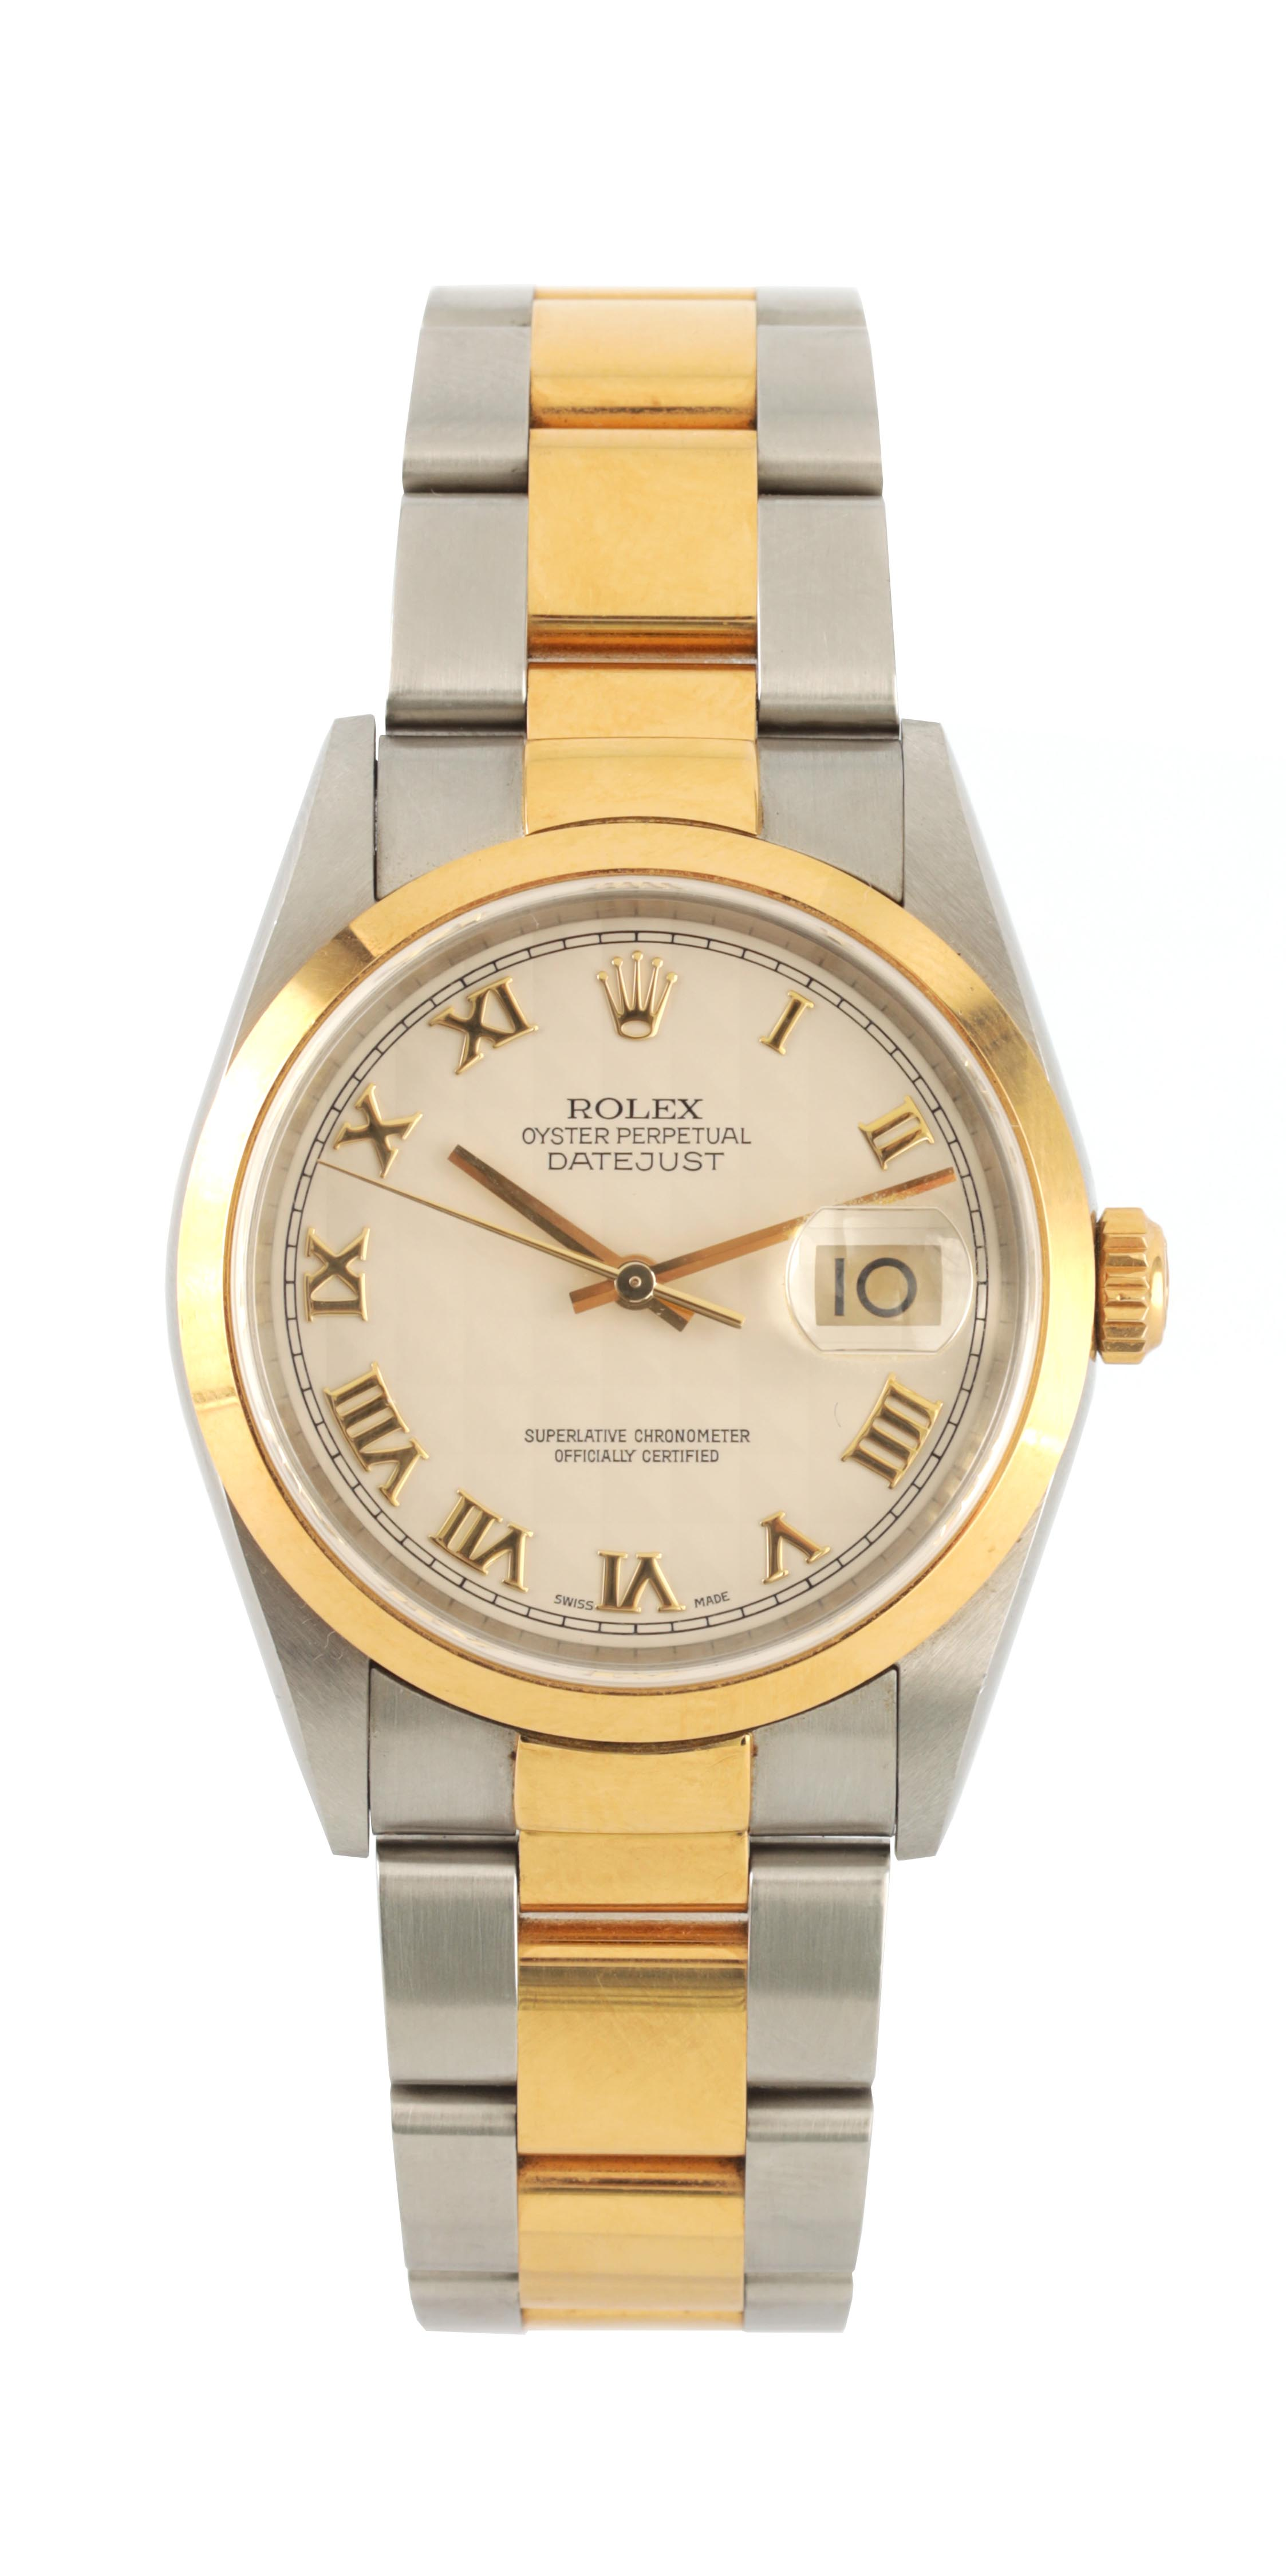 A GENTLEMAN'S STEEL AND 18CT GOLD ROLEX OYSTER PERPETUAL DATEJUST WRISTWATCH having an ivory pyramid